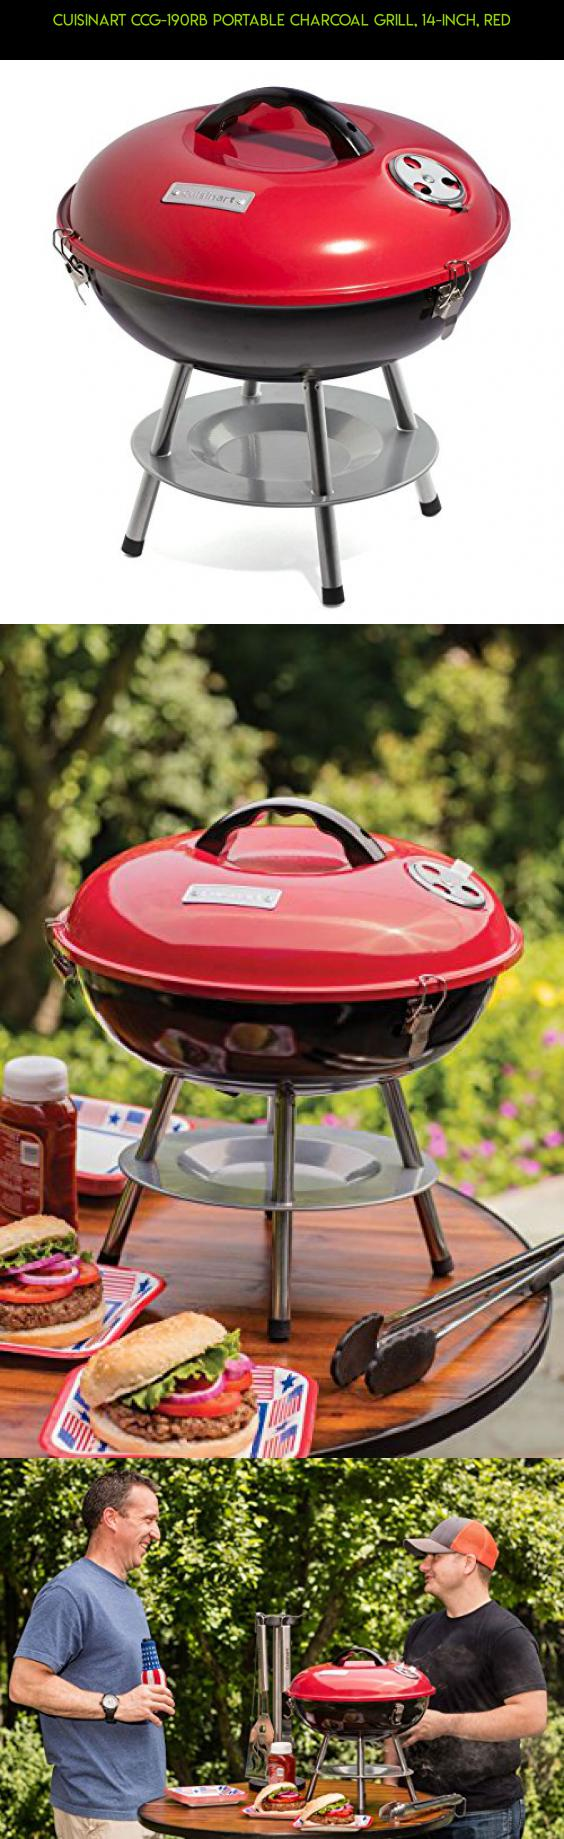 Ordinaire Cuisinart CCG 190RB Portable Charcoal Grill, 14 Inch, Red #products #